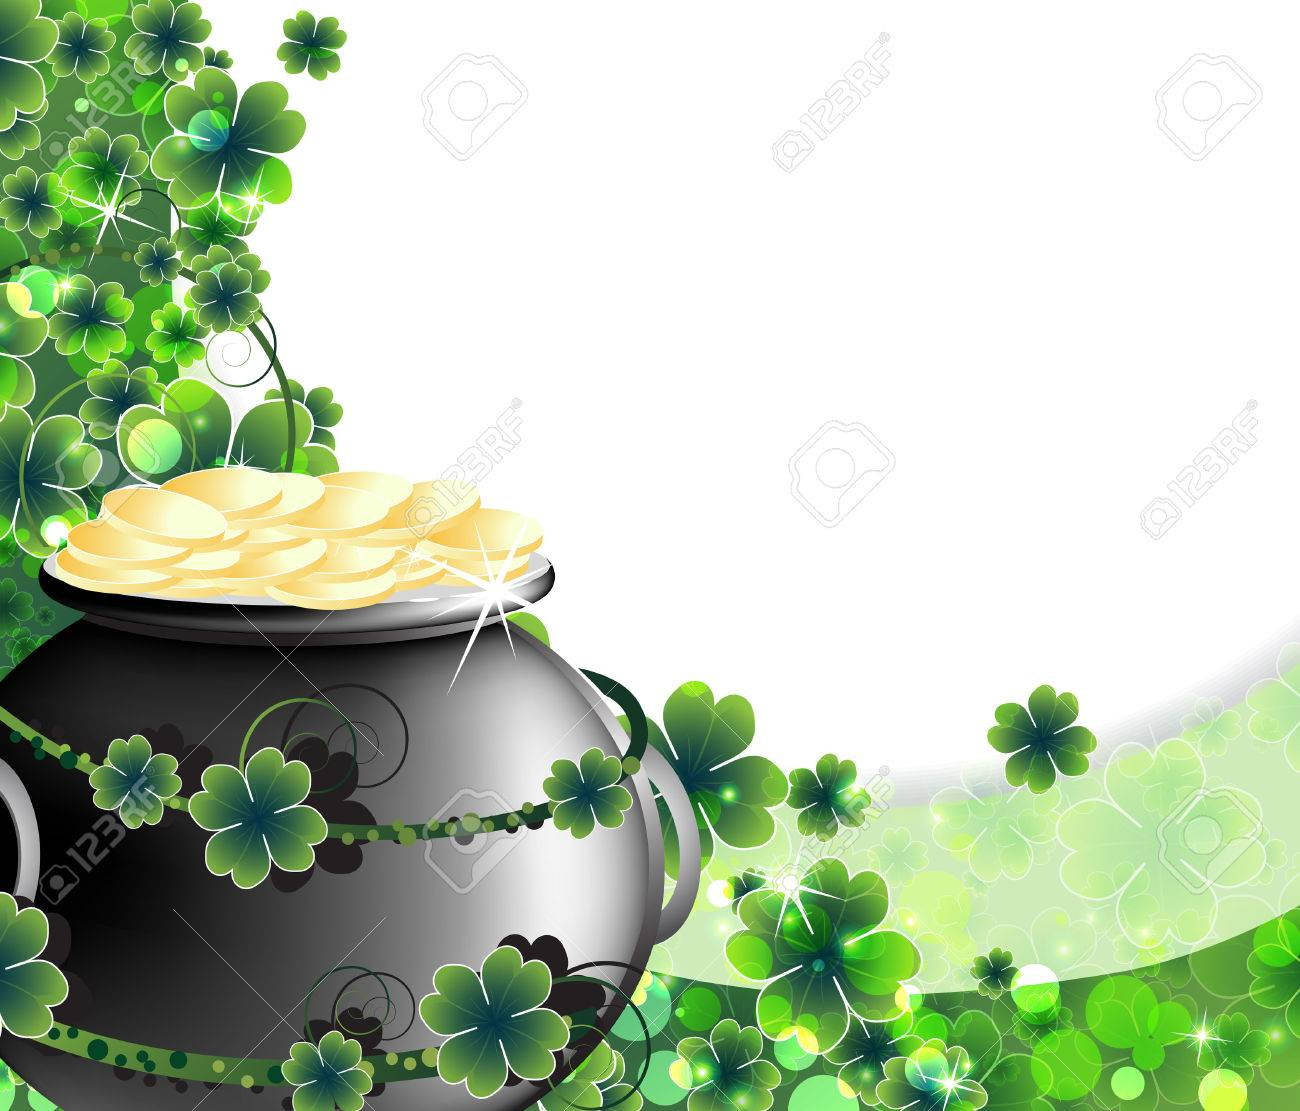 Leprechaun Pot with gold coins on abstract clover background St Patrick - 26528505